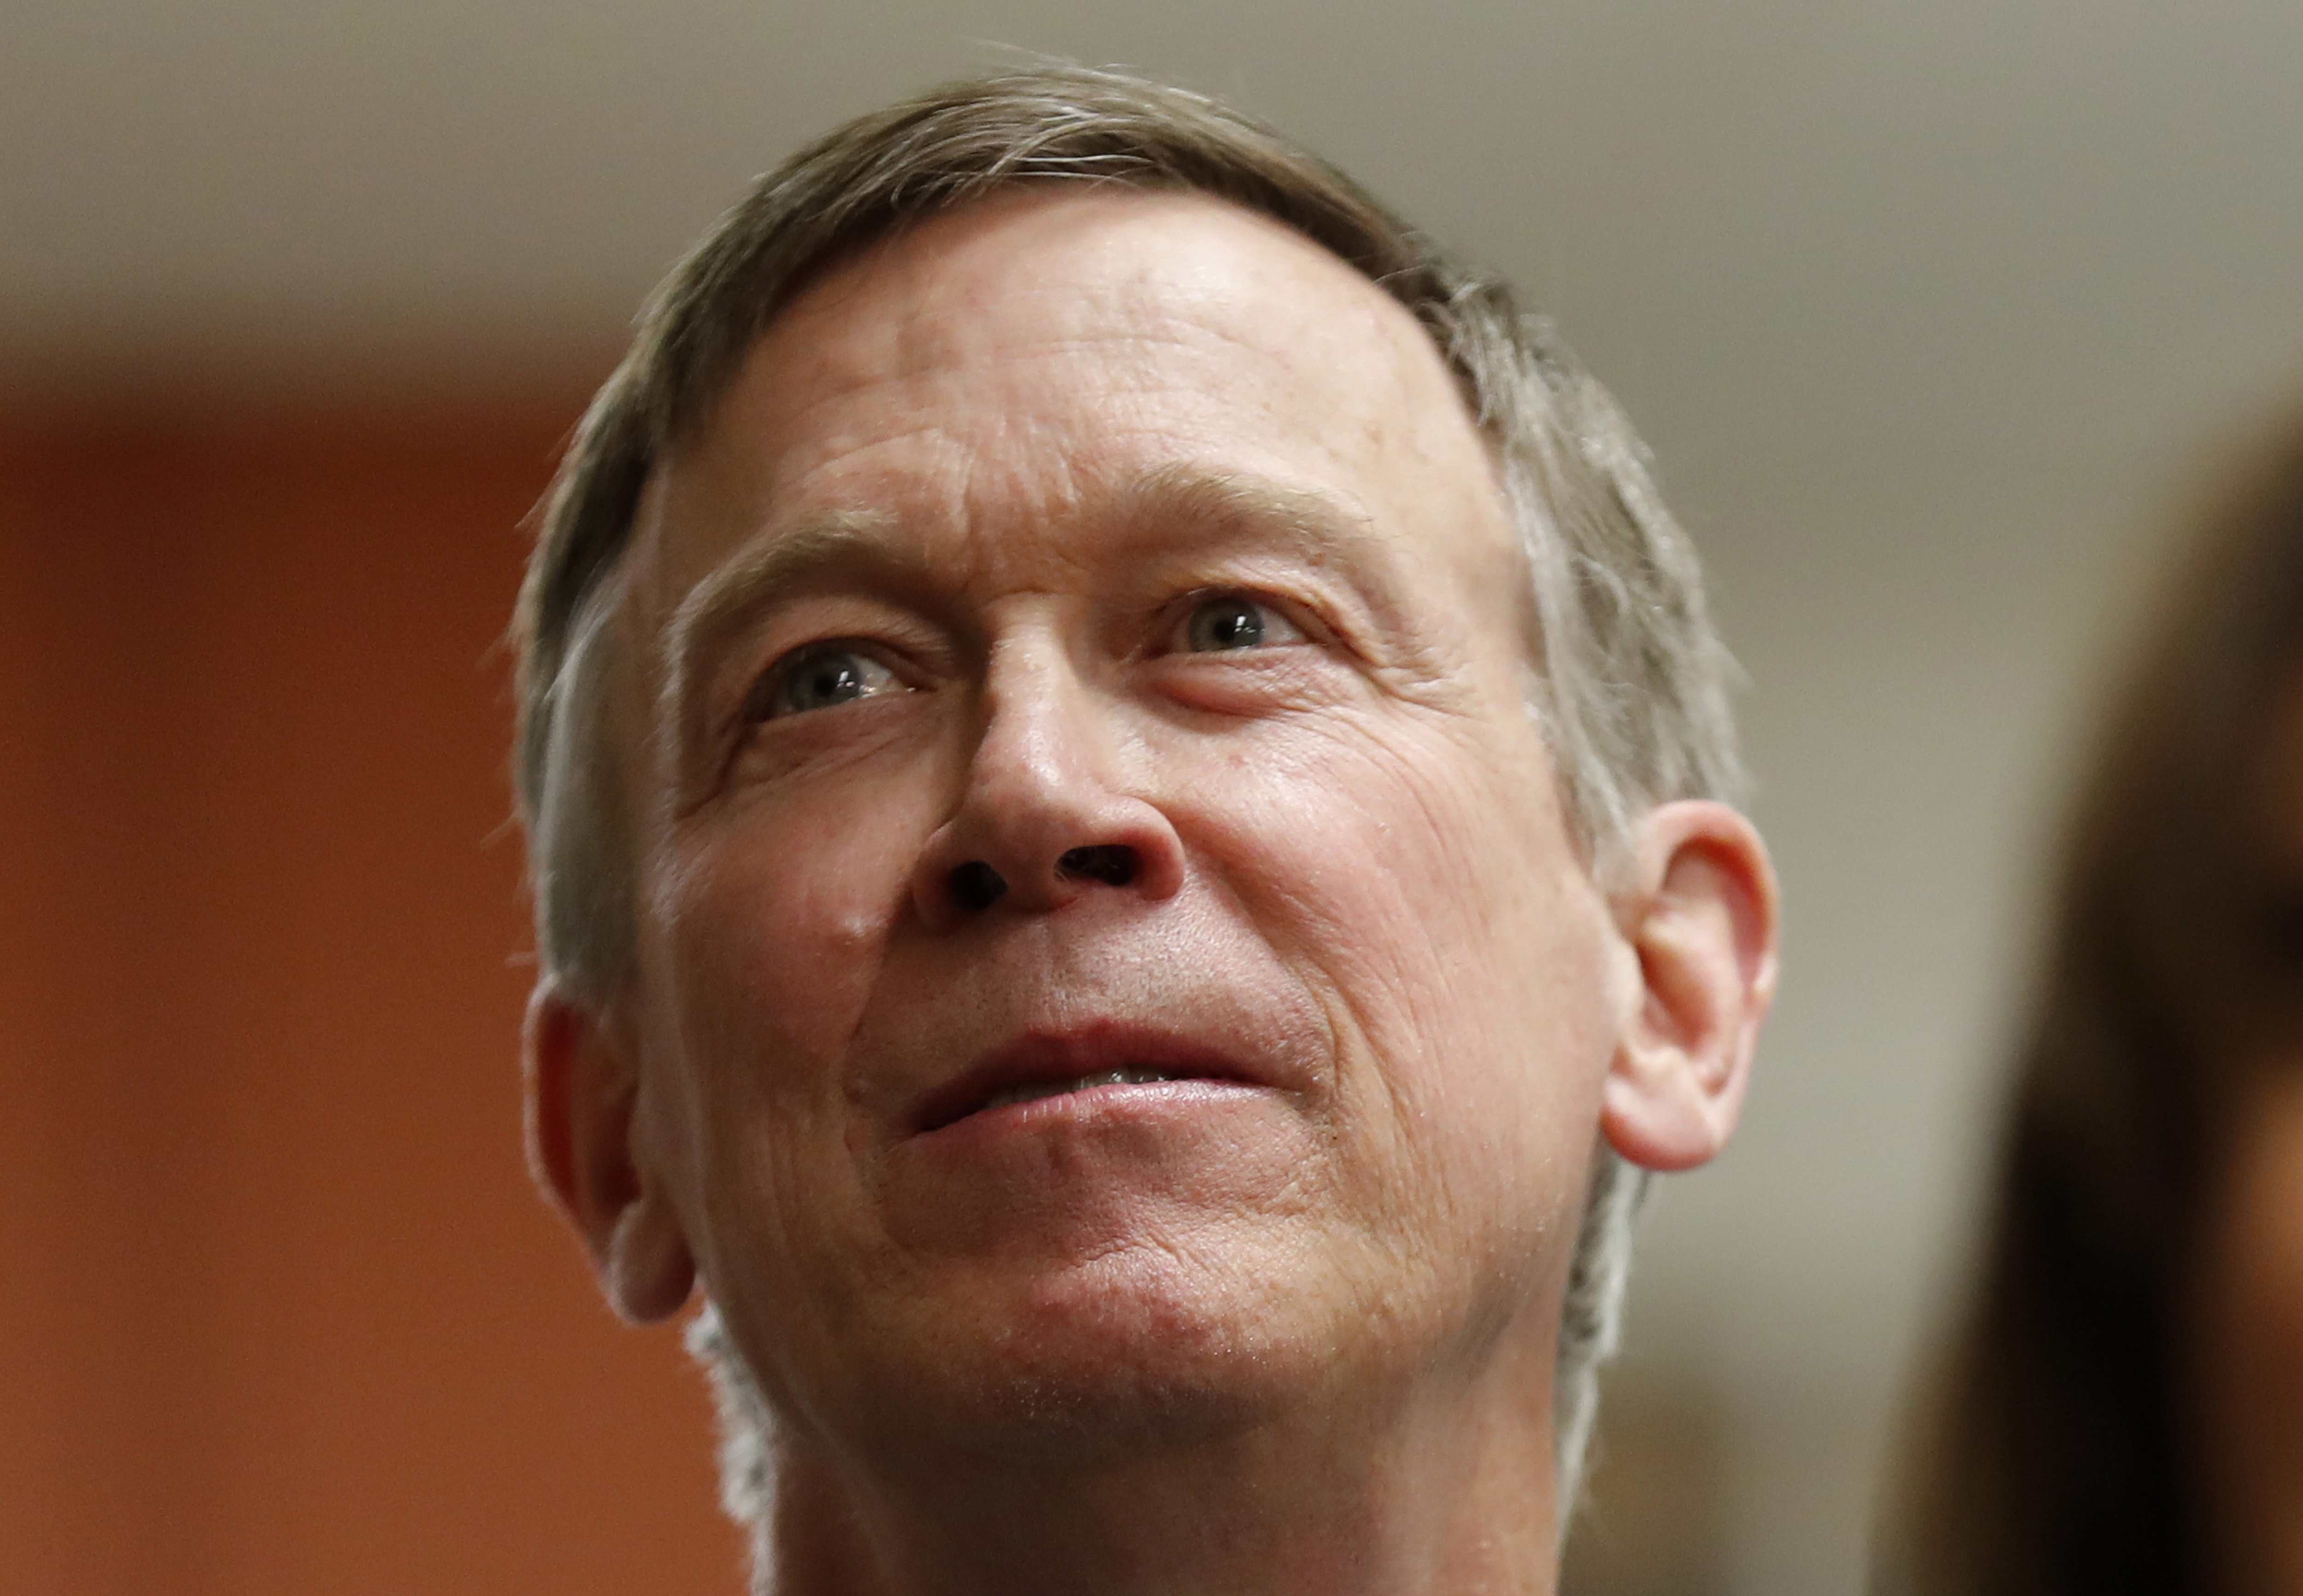 FILE - In this Feb. 23, 2019, file photo, former Colorado Gov. John Hickenlooper, left, waits to speak at the Story County Democrats' annual soup supper fundraiser in Ames, Iowa. Hickenlooper is running for president, becoming the second governor to jump